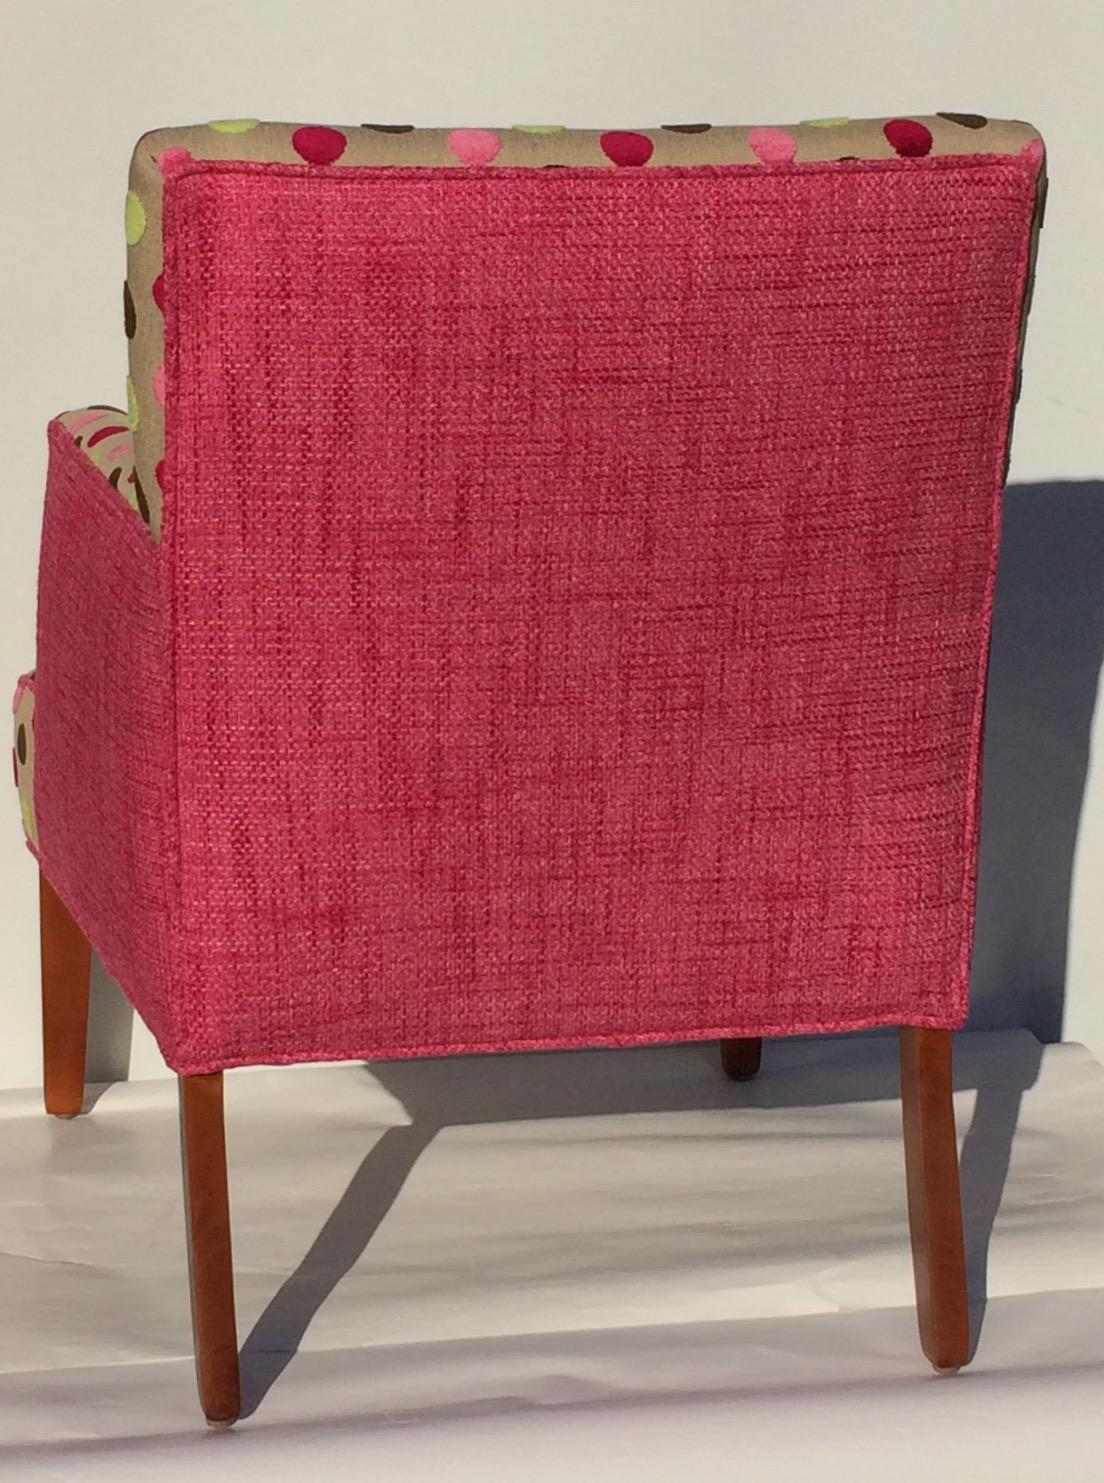 New Upholstery Pink Chenille Polka Dot Upholstered Chair   Image 3 Of 10